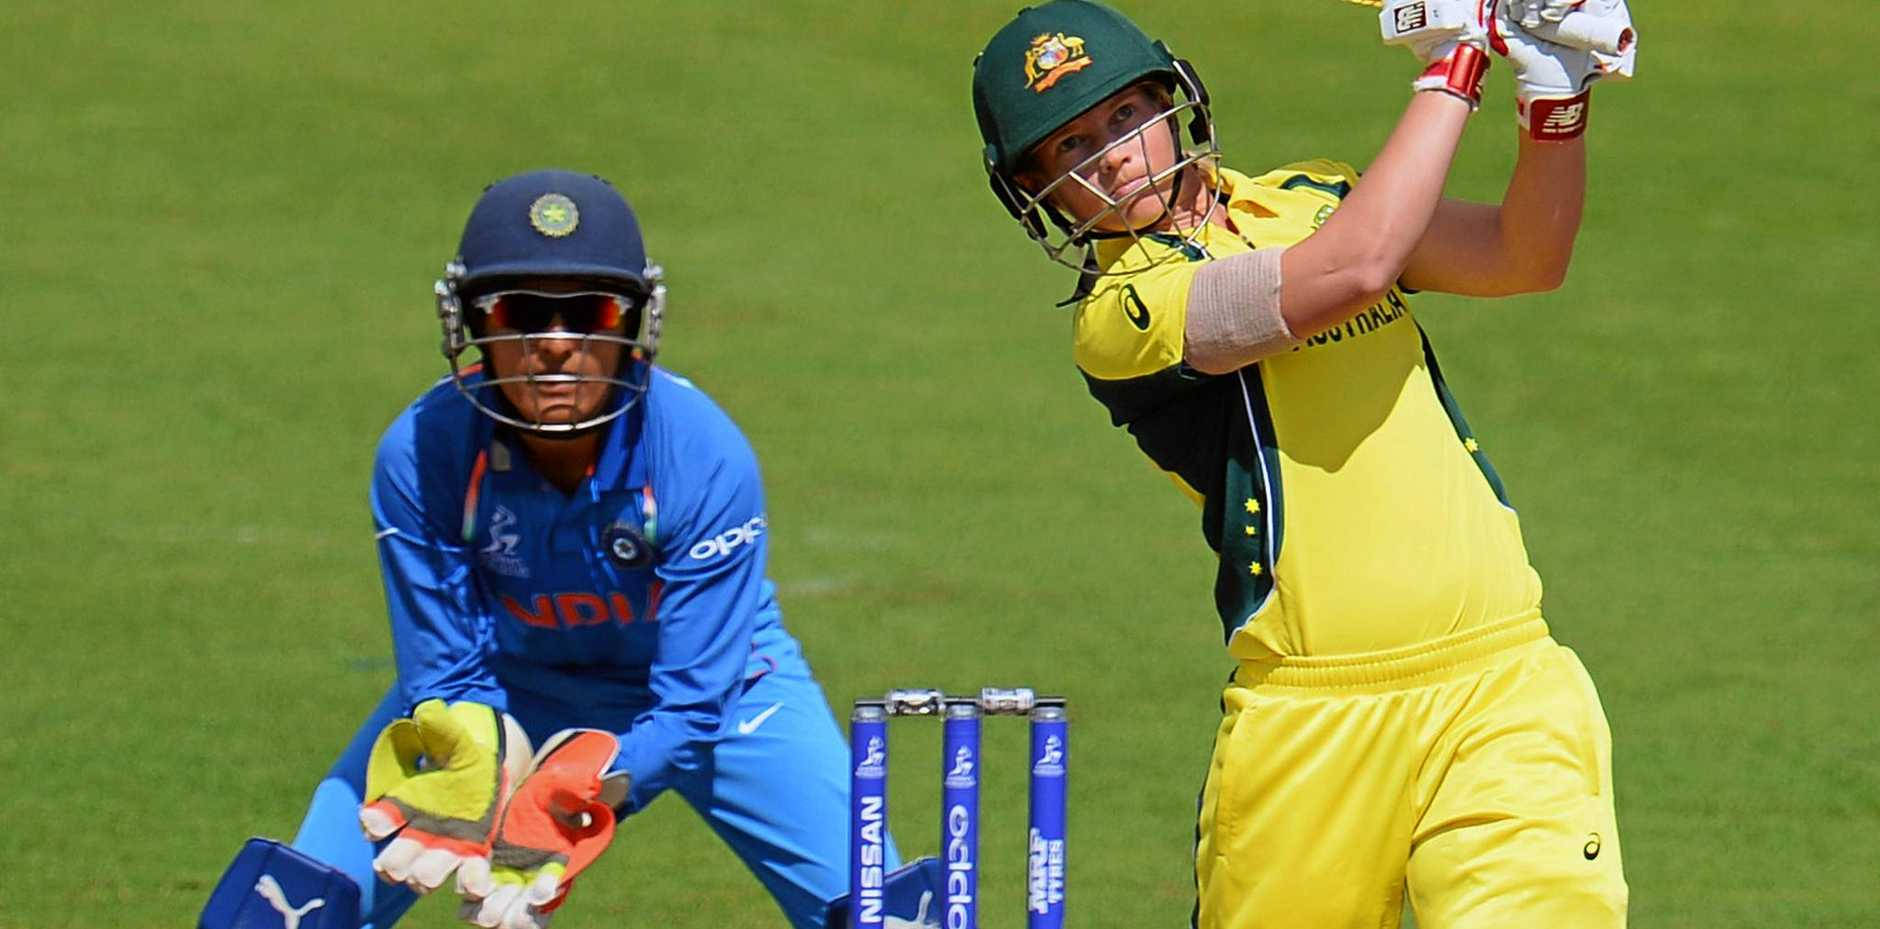 Meg Lanning of Australia plays a shot during the Women's World Cup match against England in Bristol.